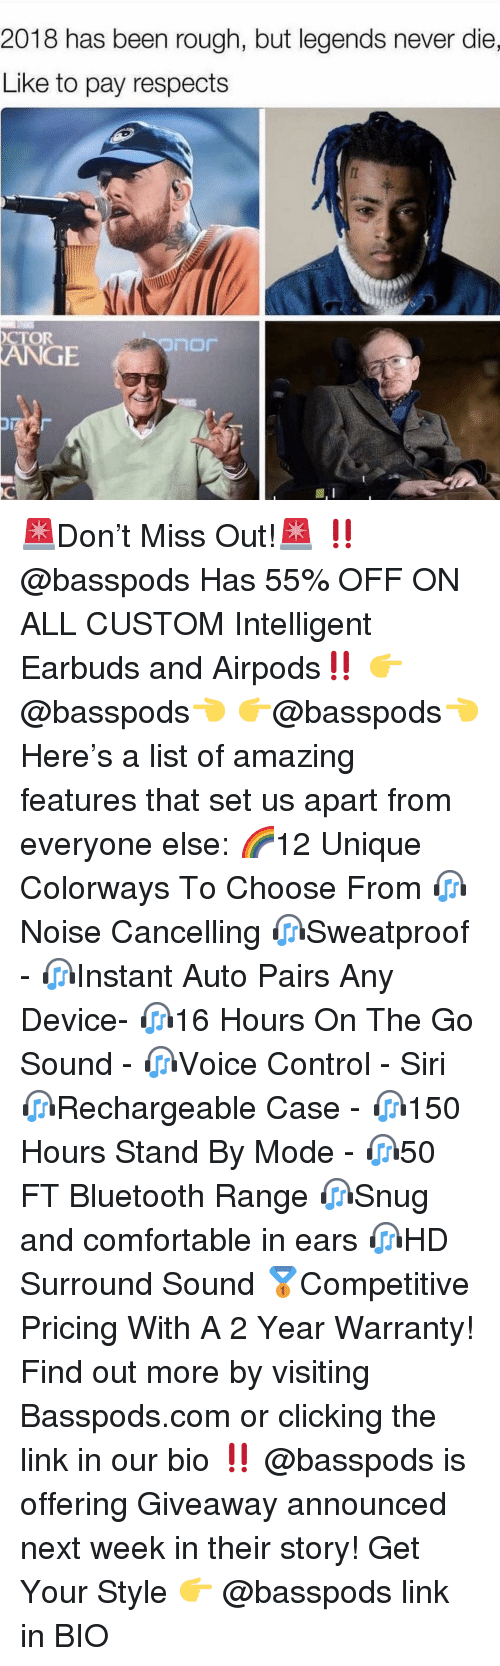 Bluetooth, Comfortable, and Memes: 2018 has been rough, but legends never die,  Like to pay respects  CTOR  门口厂  GE 🚨Don't Miss Out!🚨 ‼️ @basspods Has 55% OFF ON ALL CUSTOM Intelligent Earbuds and Airpods‼️ 👉@basspods👈 👉@basspods👈 Here's a list of amazing features that set us apart from everyone else: 🌈12 Unique Colorways To Choose From 🎧Noise Cancelling 🎧Sweatproof - 🎧Instant Auto Pairs Any Device- 🎧16 Hours On The Go Sound - 🎧Voice Control - Siri 🎧Rechargeable Case - 🎧150 Hours Stand By Mode - 🎧50 FT Bluetooth Range 🎧Snug and comfortable in ears 🎧HD Surround Sound 🥇Competitive Pricing With A 2 Year Warranty! Find out more by visiting Basspods.com or clicking the link in our bio ‼️ @basspods is offering Giveaway announced next week in their story! Get Your Style 👉 @basspods link in BIO